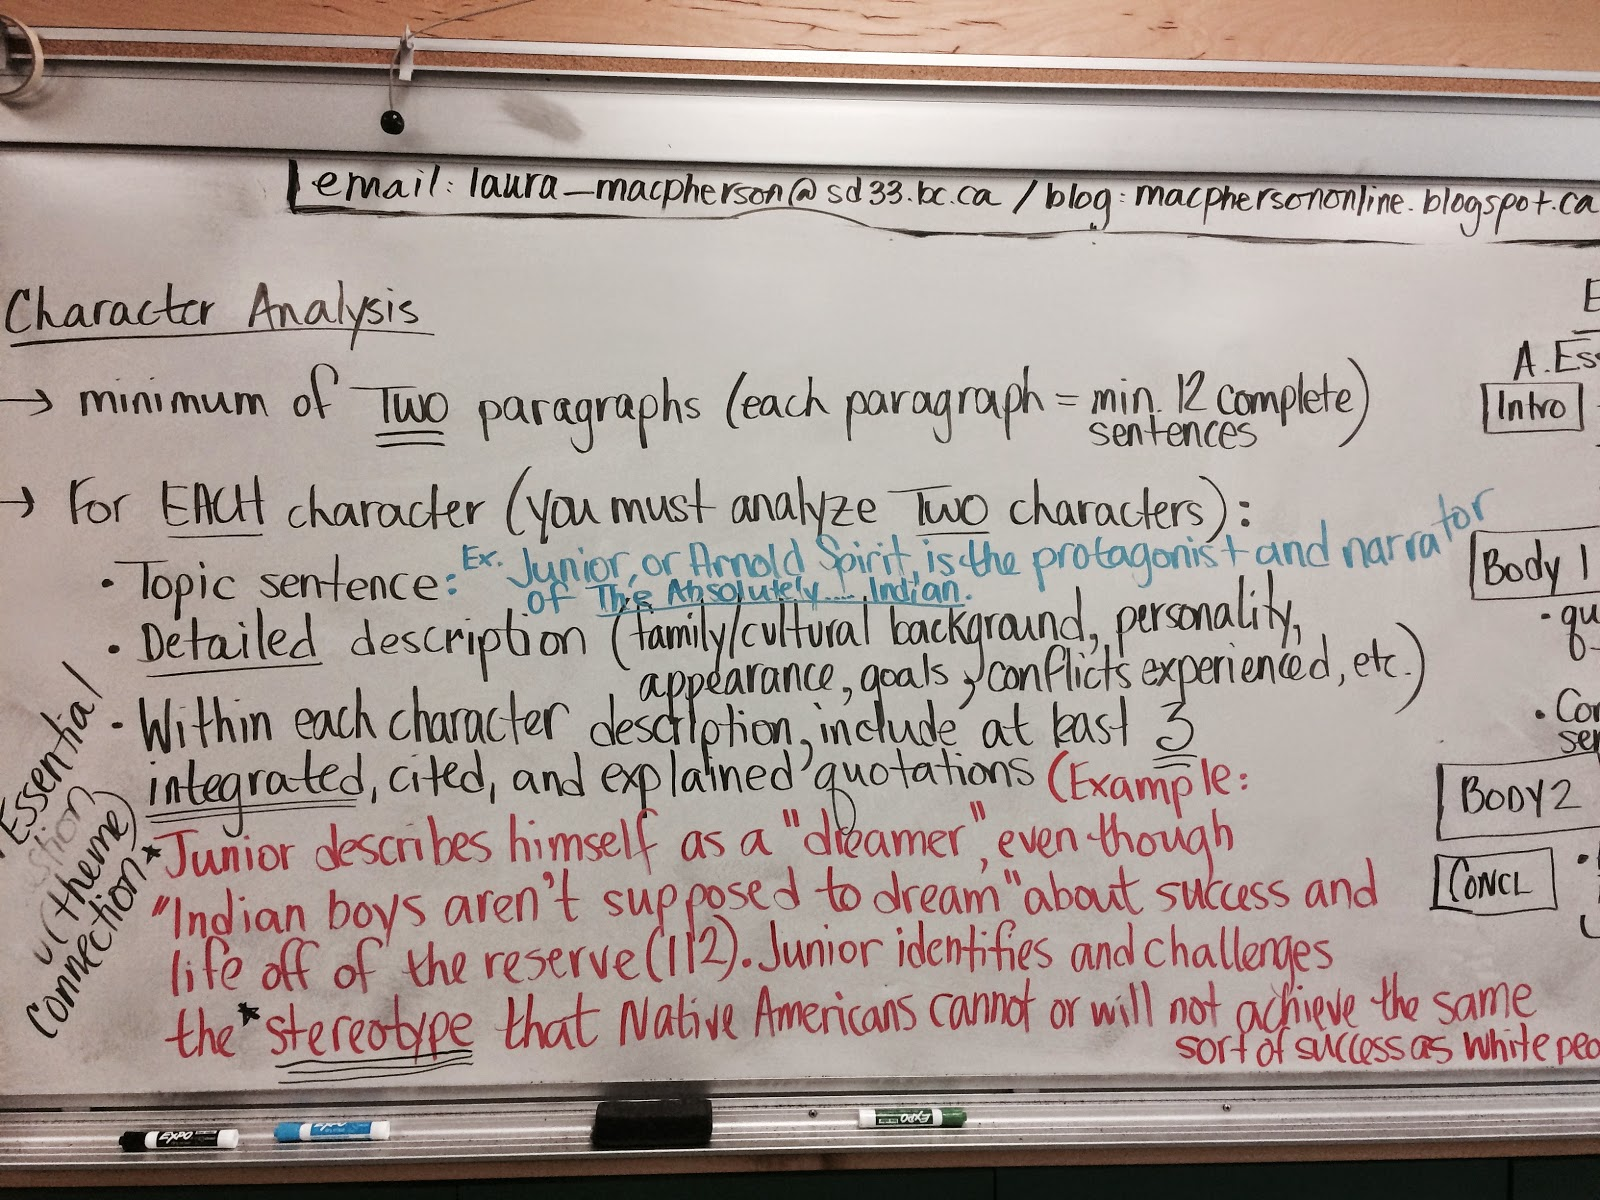 macpherson online  the crucible 1 overture critical summaries due 2 overture quiz mark record 3 handout essay and discussion topics choose 3 topics and write a